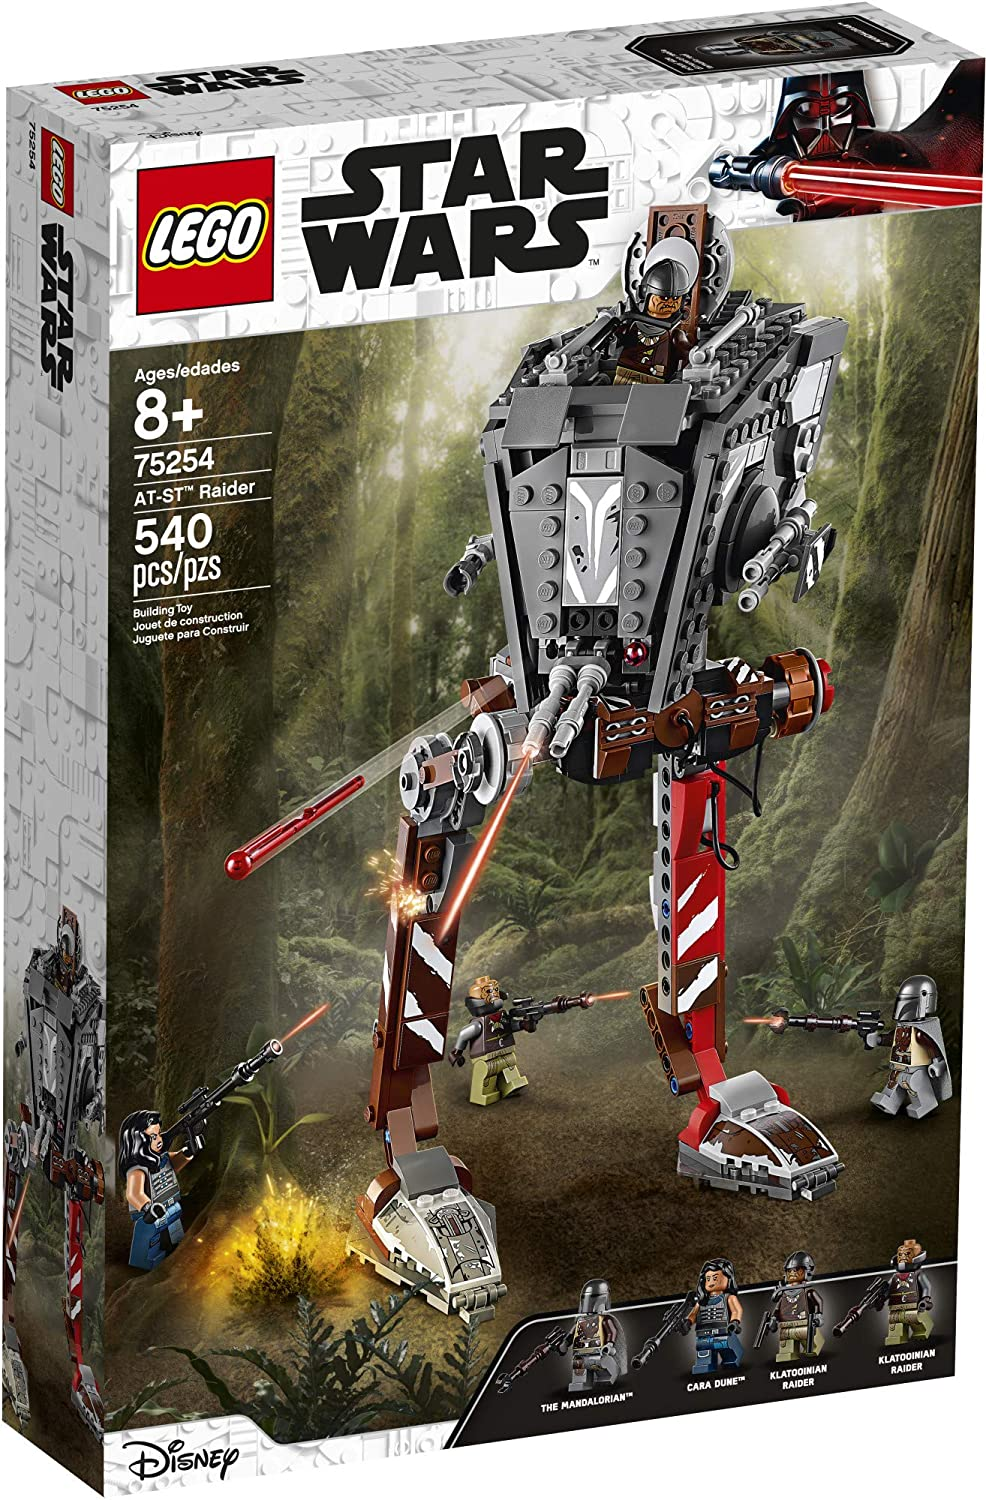 TM AT-ST Raider Lego Set 1